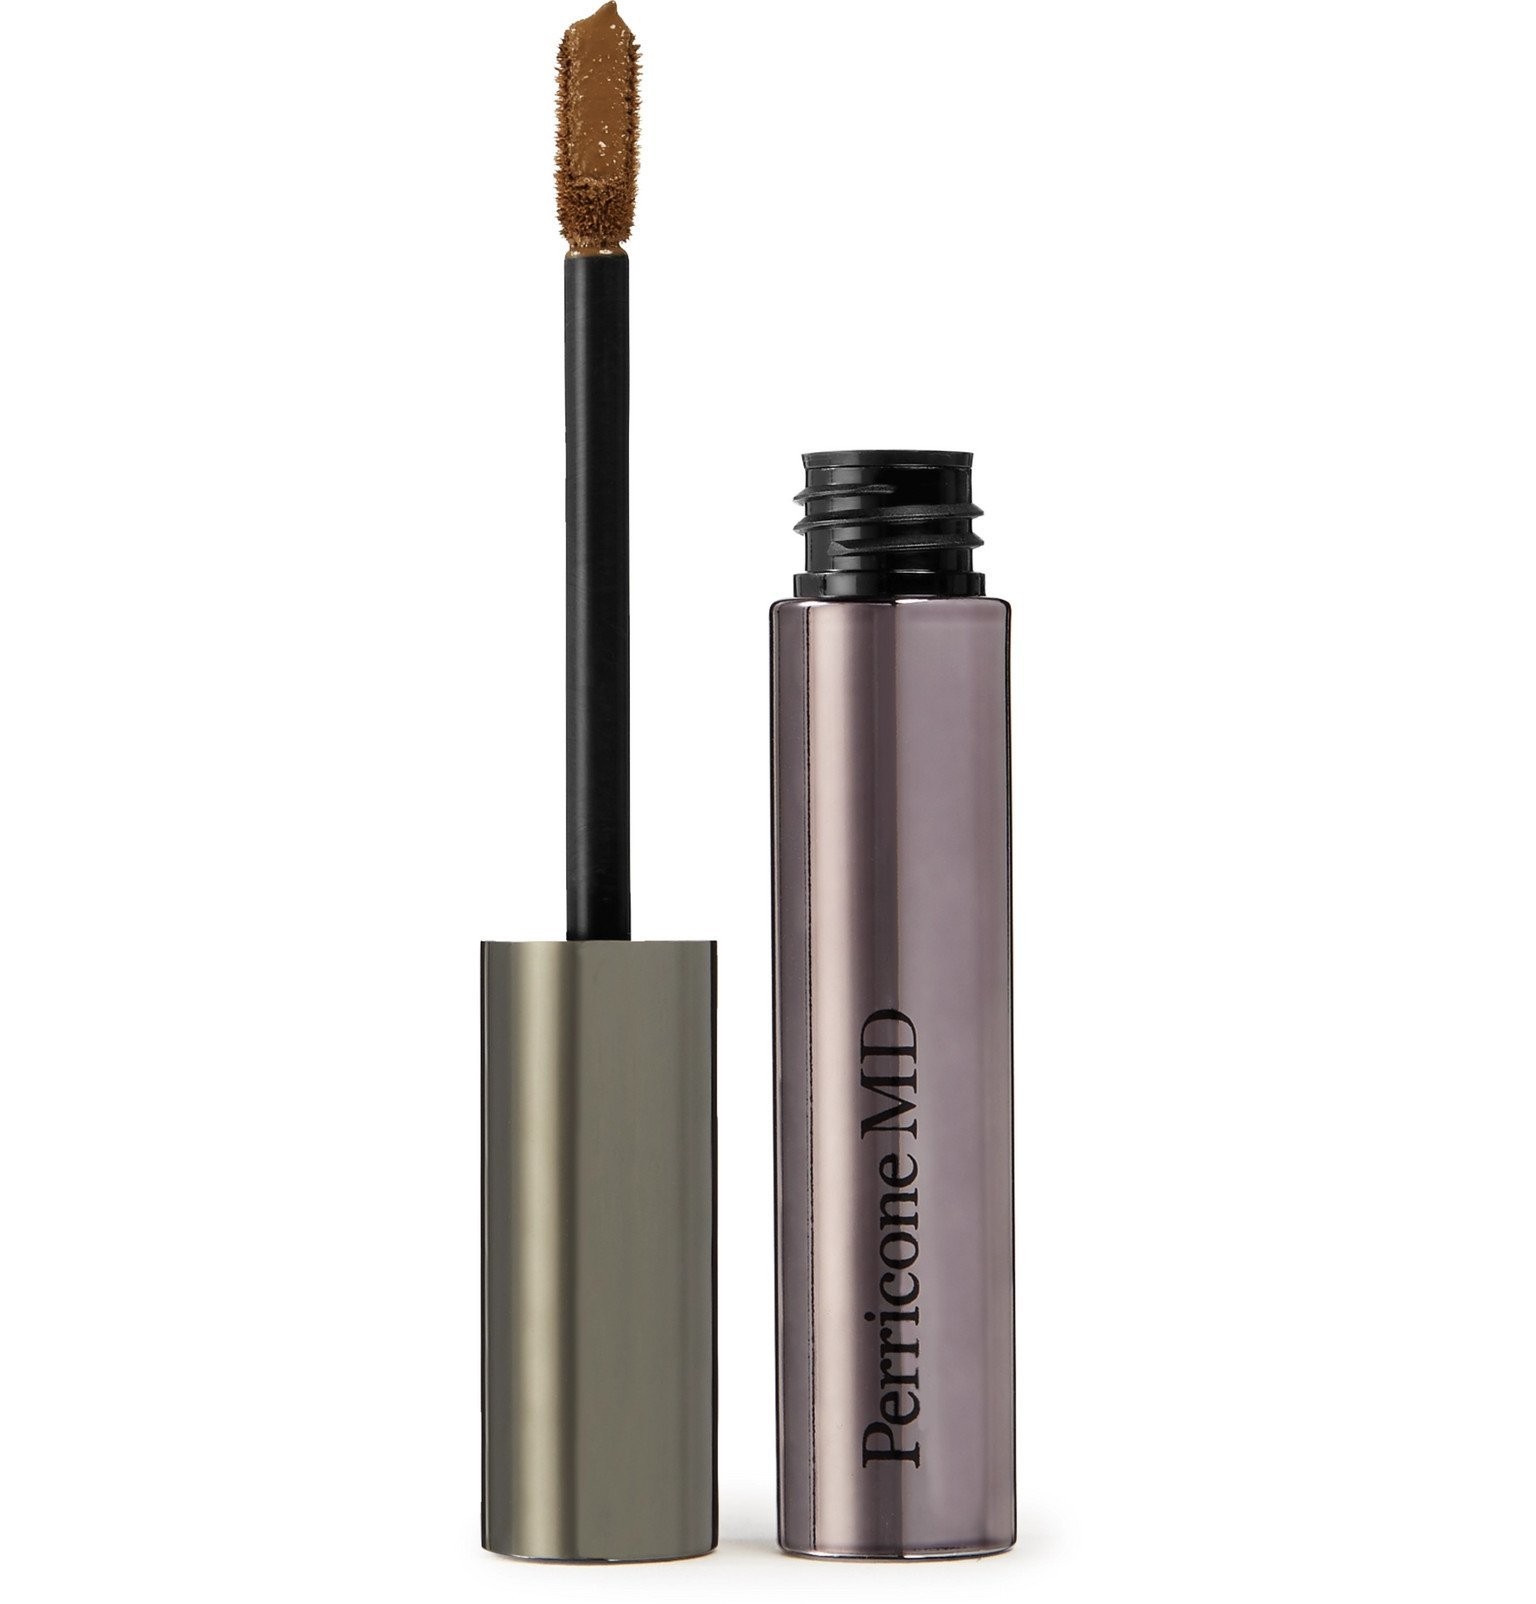 Perricone MD - No Makeup Concealer Broad Spectrum SPF20 - Deep, 10ml - Colorless